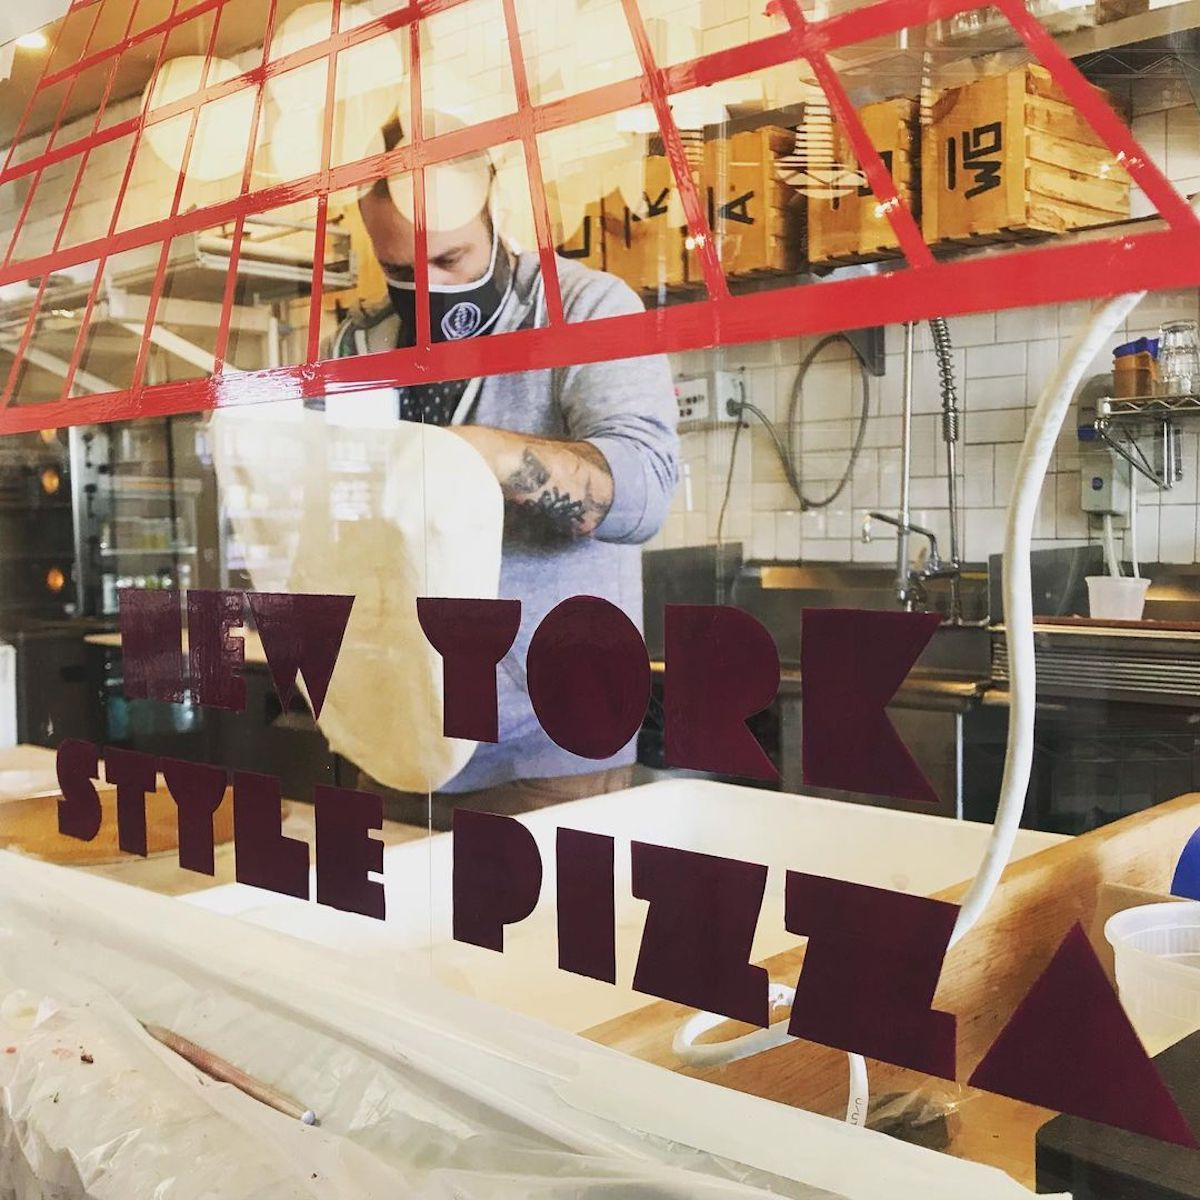 Full Proof Pizza Coming to Beverly Hills